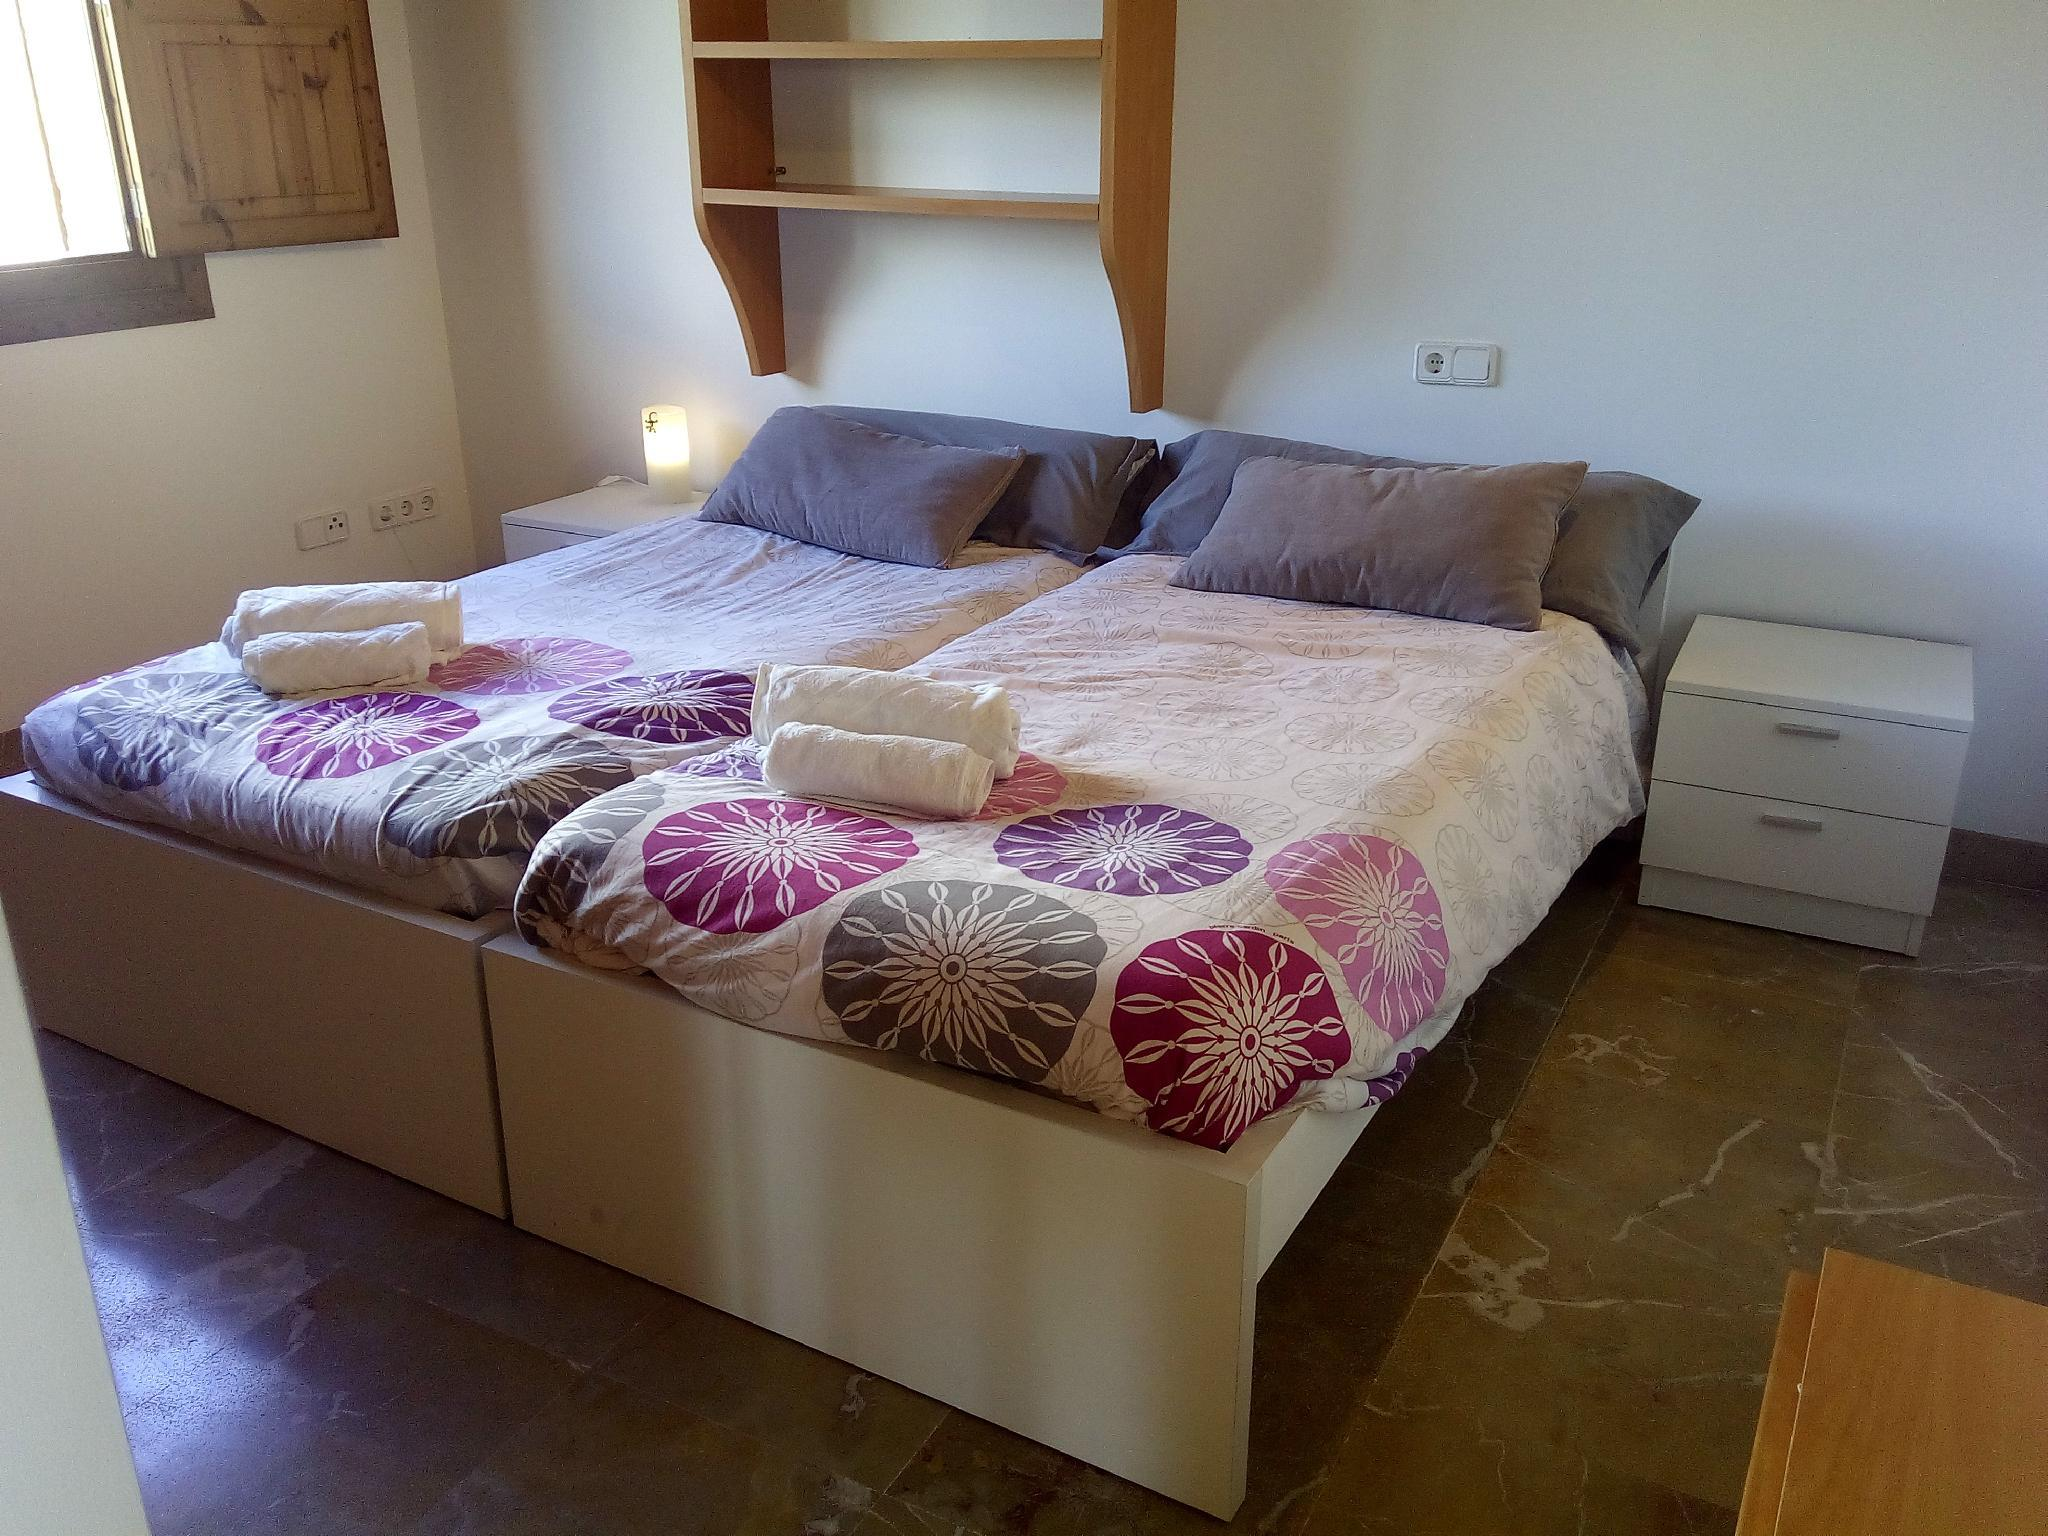 Ideal house for families Very quiet area and good access by car